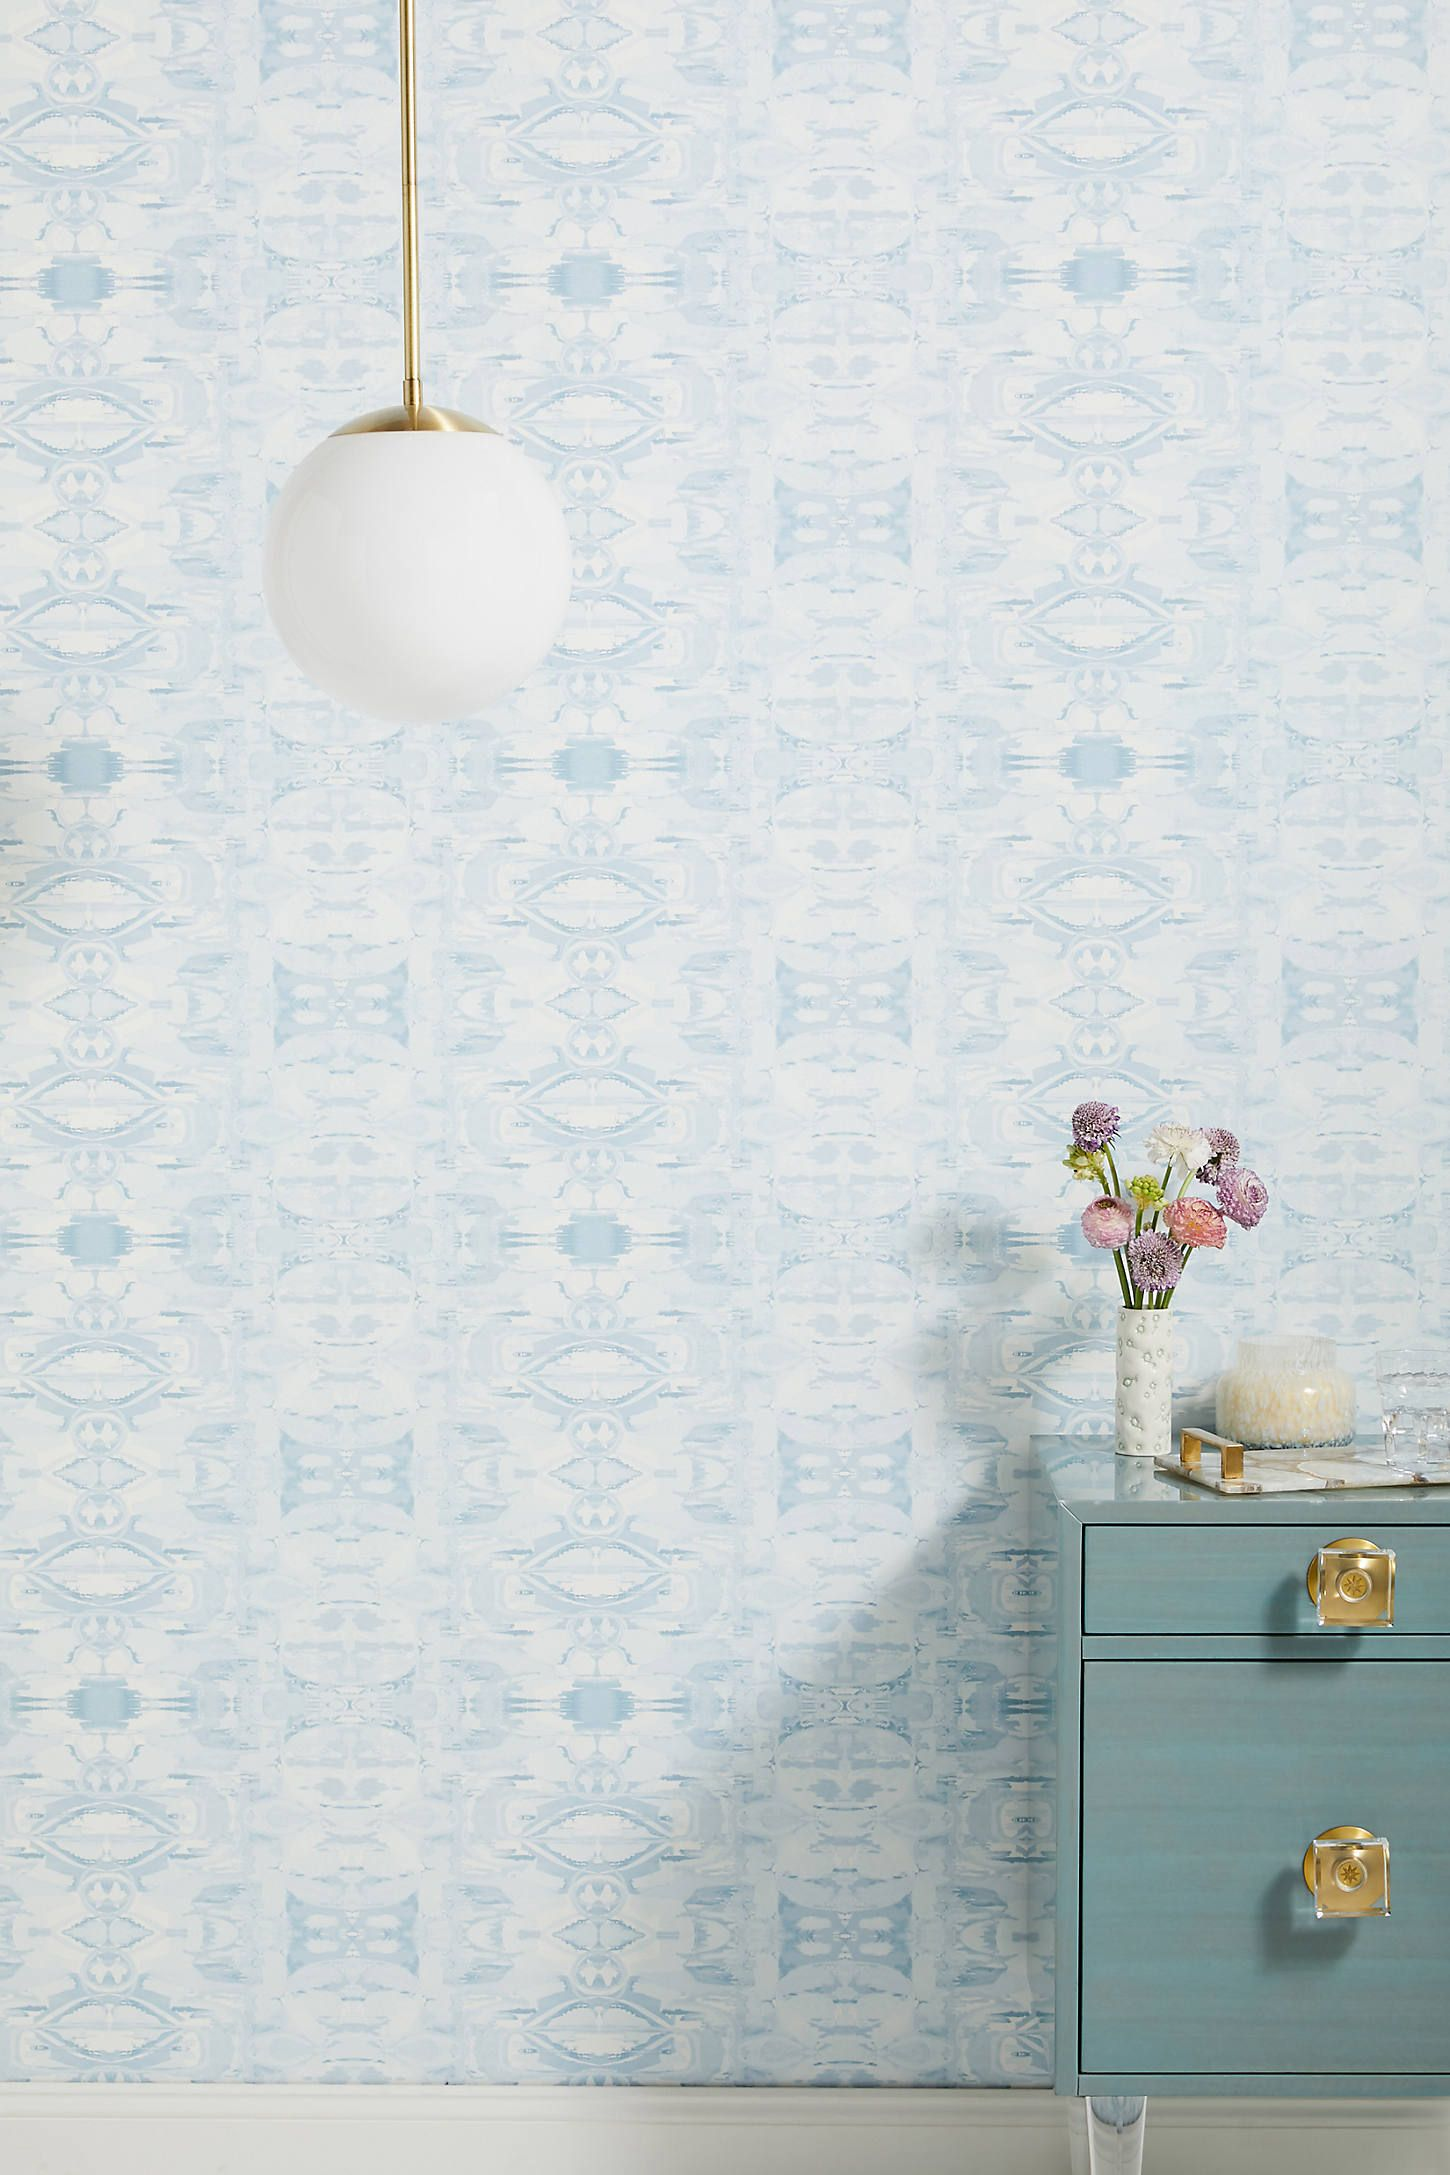 Illiana Wallpaper by Anthropologie in Blue, Wall Decor in